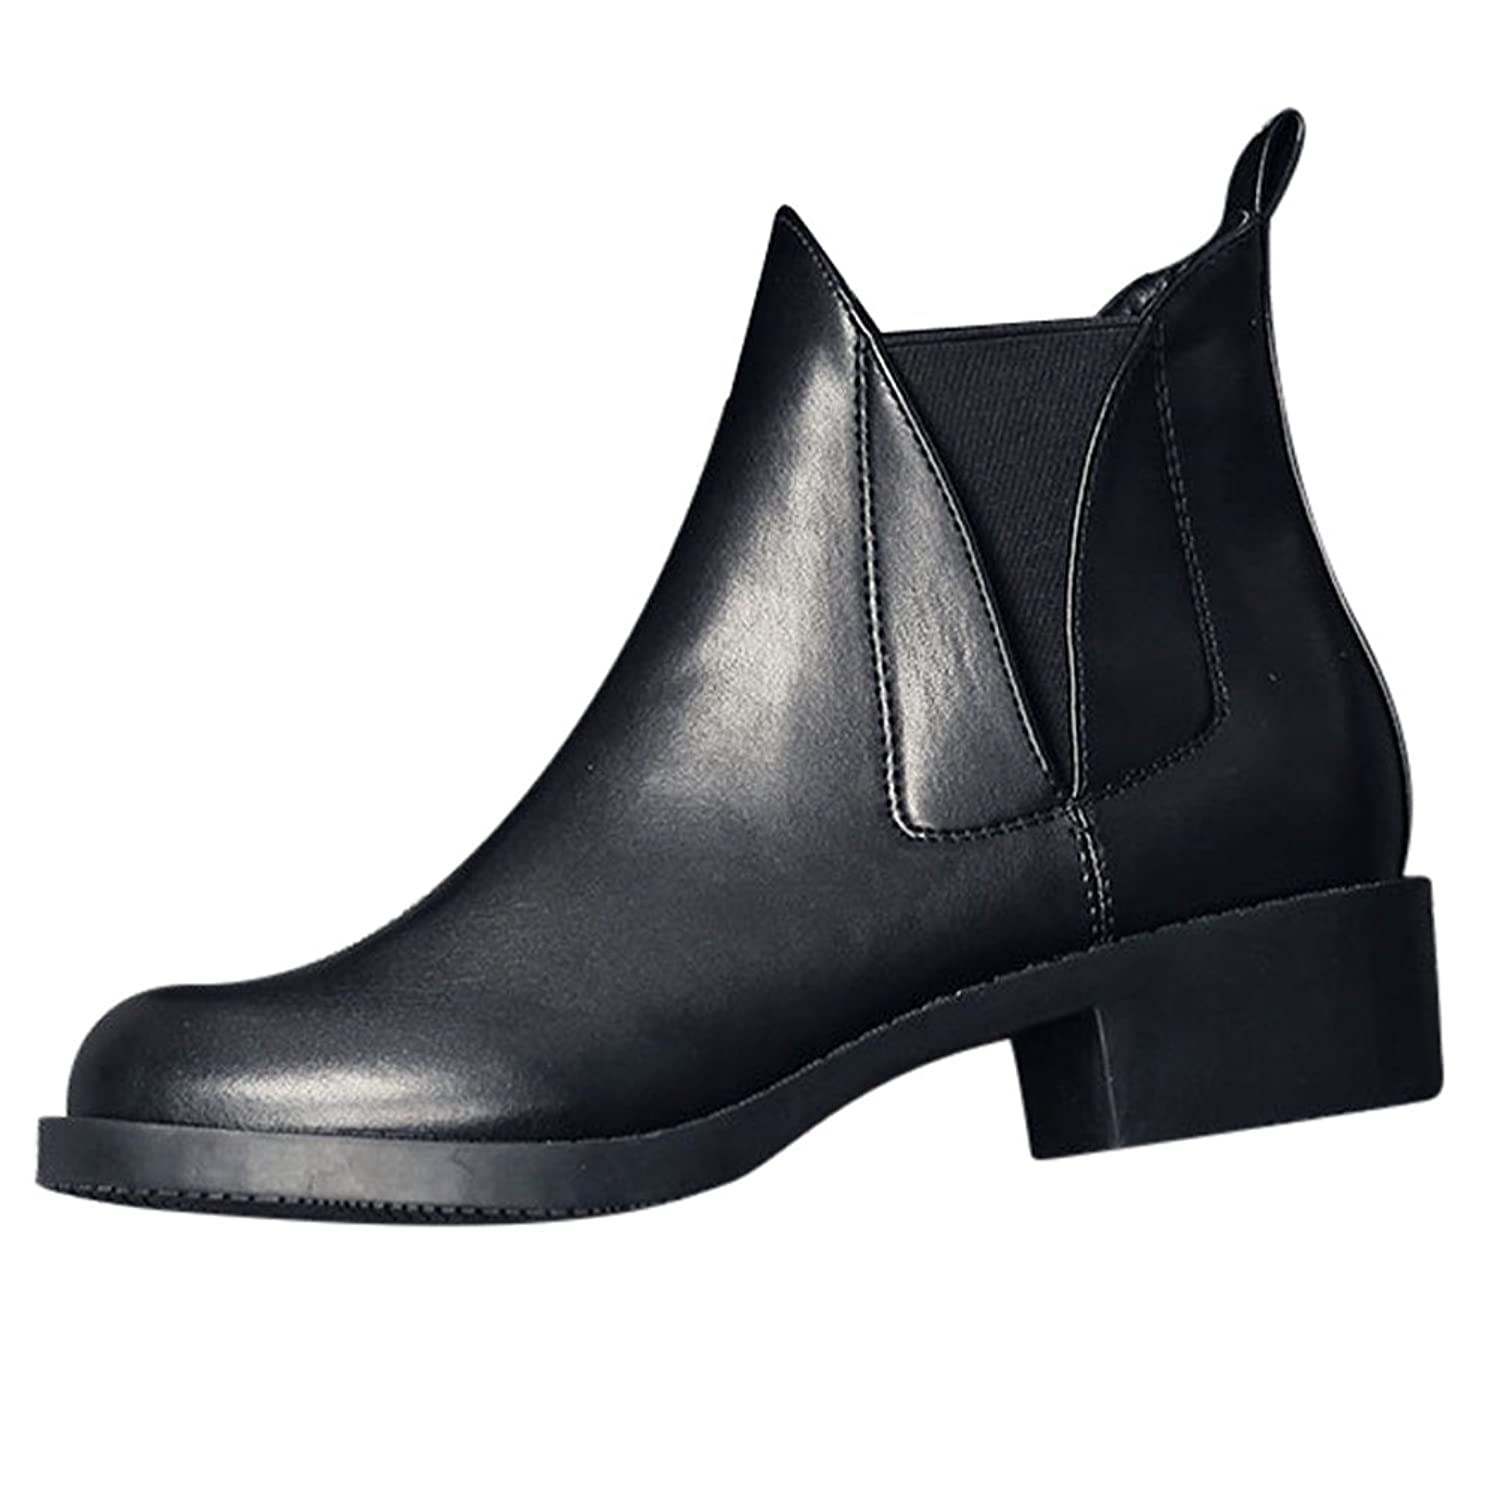 across this sole comfortable makes comforter a walk wedge in say heels semi face of i short fancy halfway sensible full because more actually heel being goes to the but stops them black